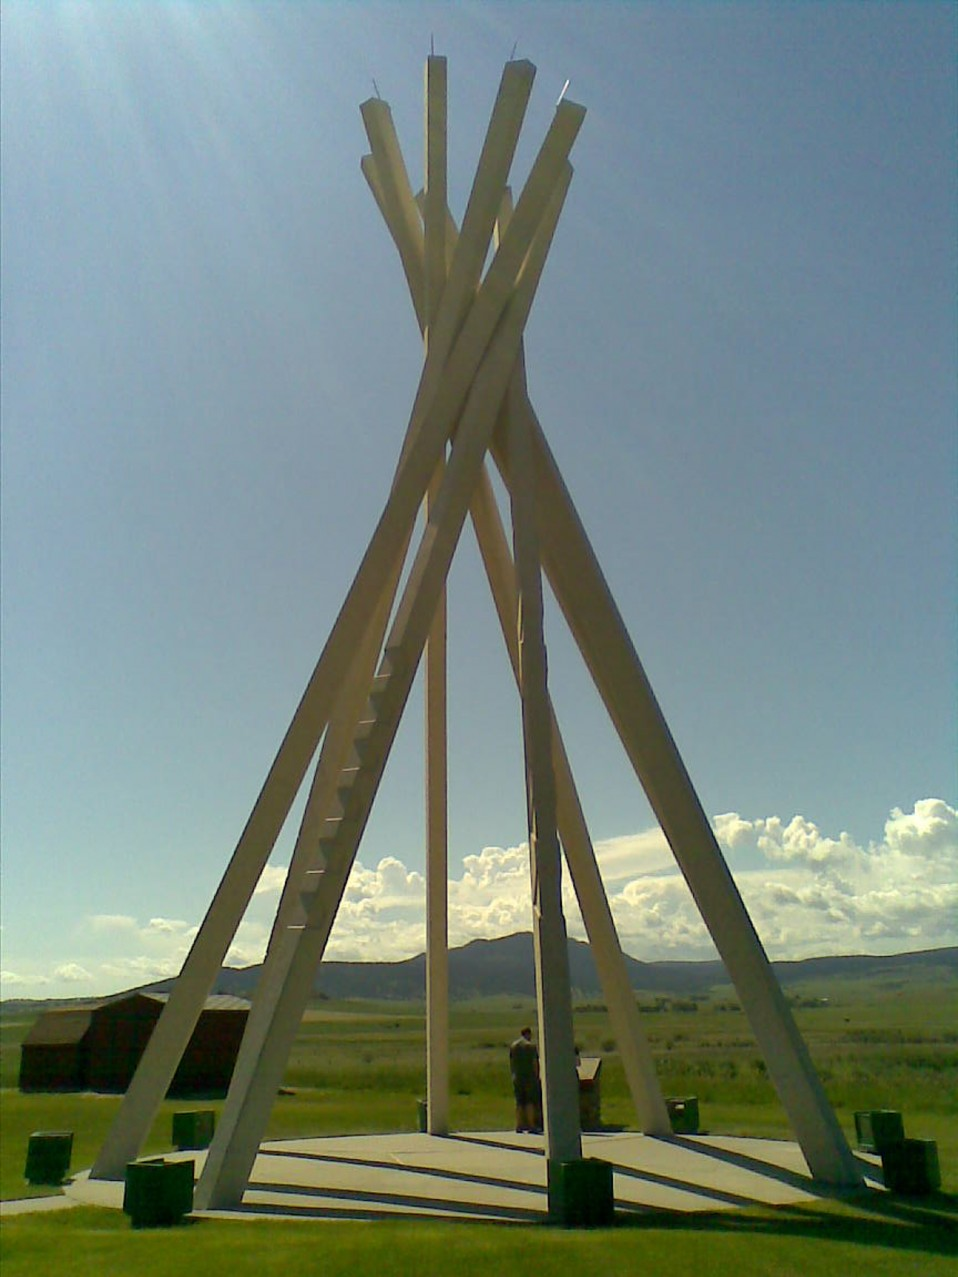 Teepee Rest Areas in South Dakota